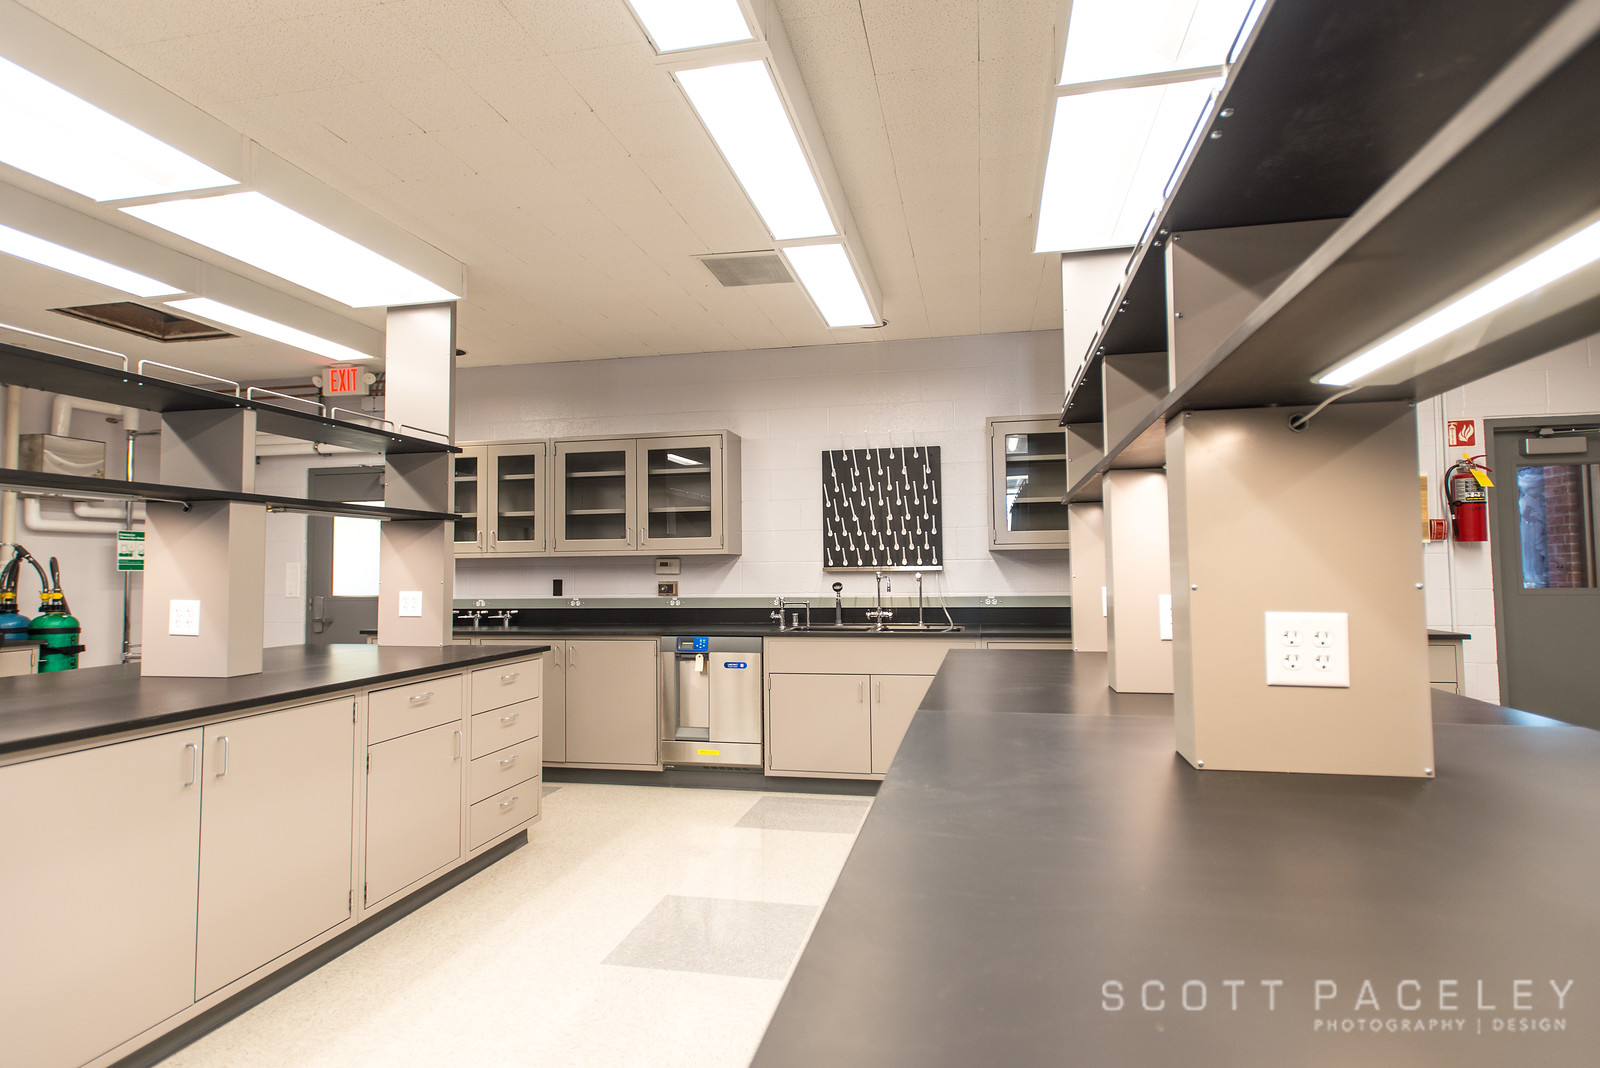 Sanitary District Lab renovation project by Reifsteck Reid Architects